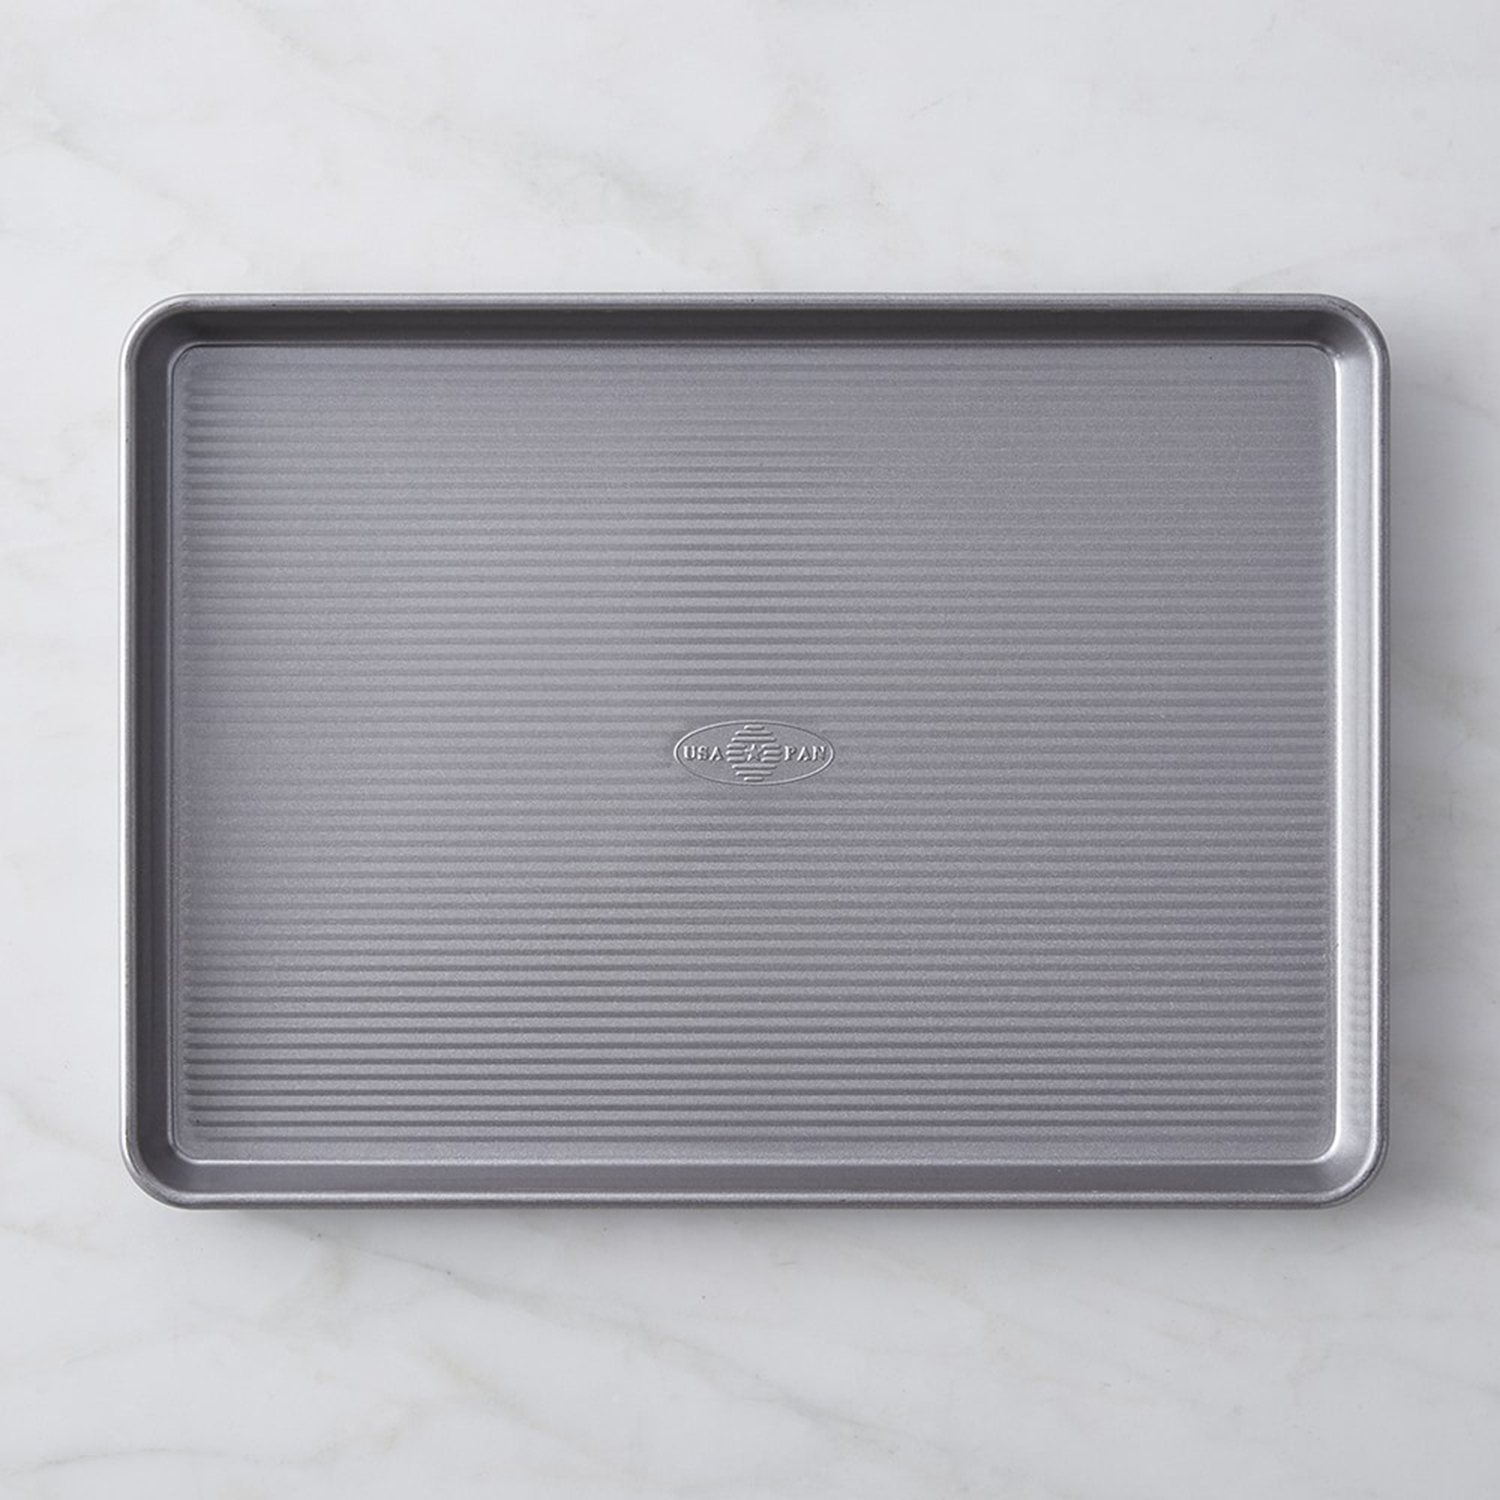 USA Pan Nonstick Half Sheet Pan